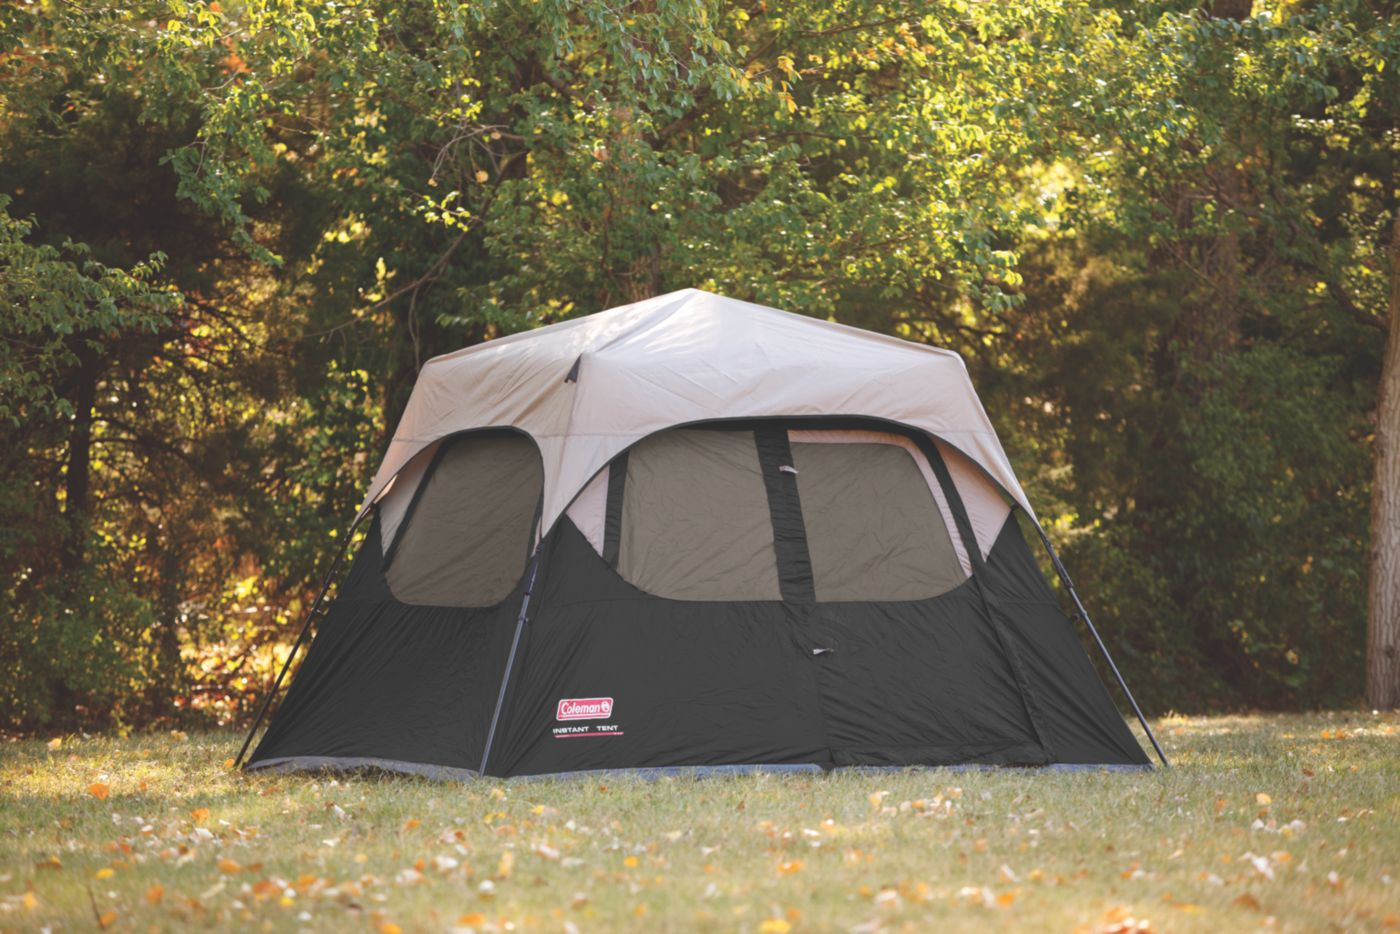 4-Person Instant Tent Rainfly Accessory  sc 1 st  Coleman & Tent Accessories | Coleman Tents | Coleman